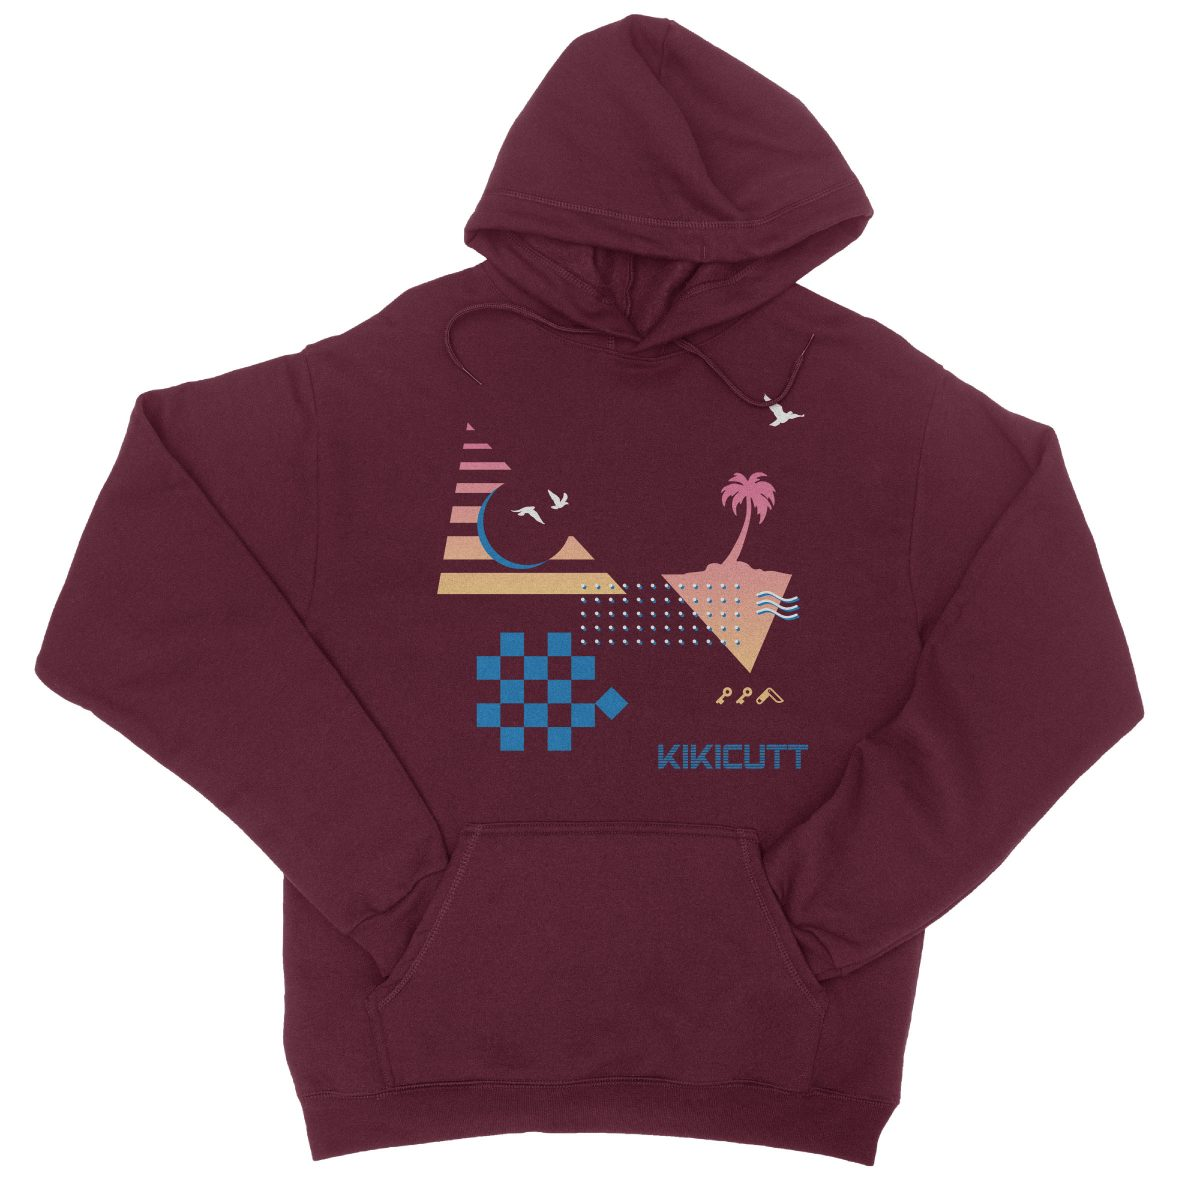 CHECKERED PAST retro throwback 80s style design graphic hoodie in maroon